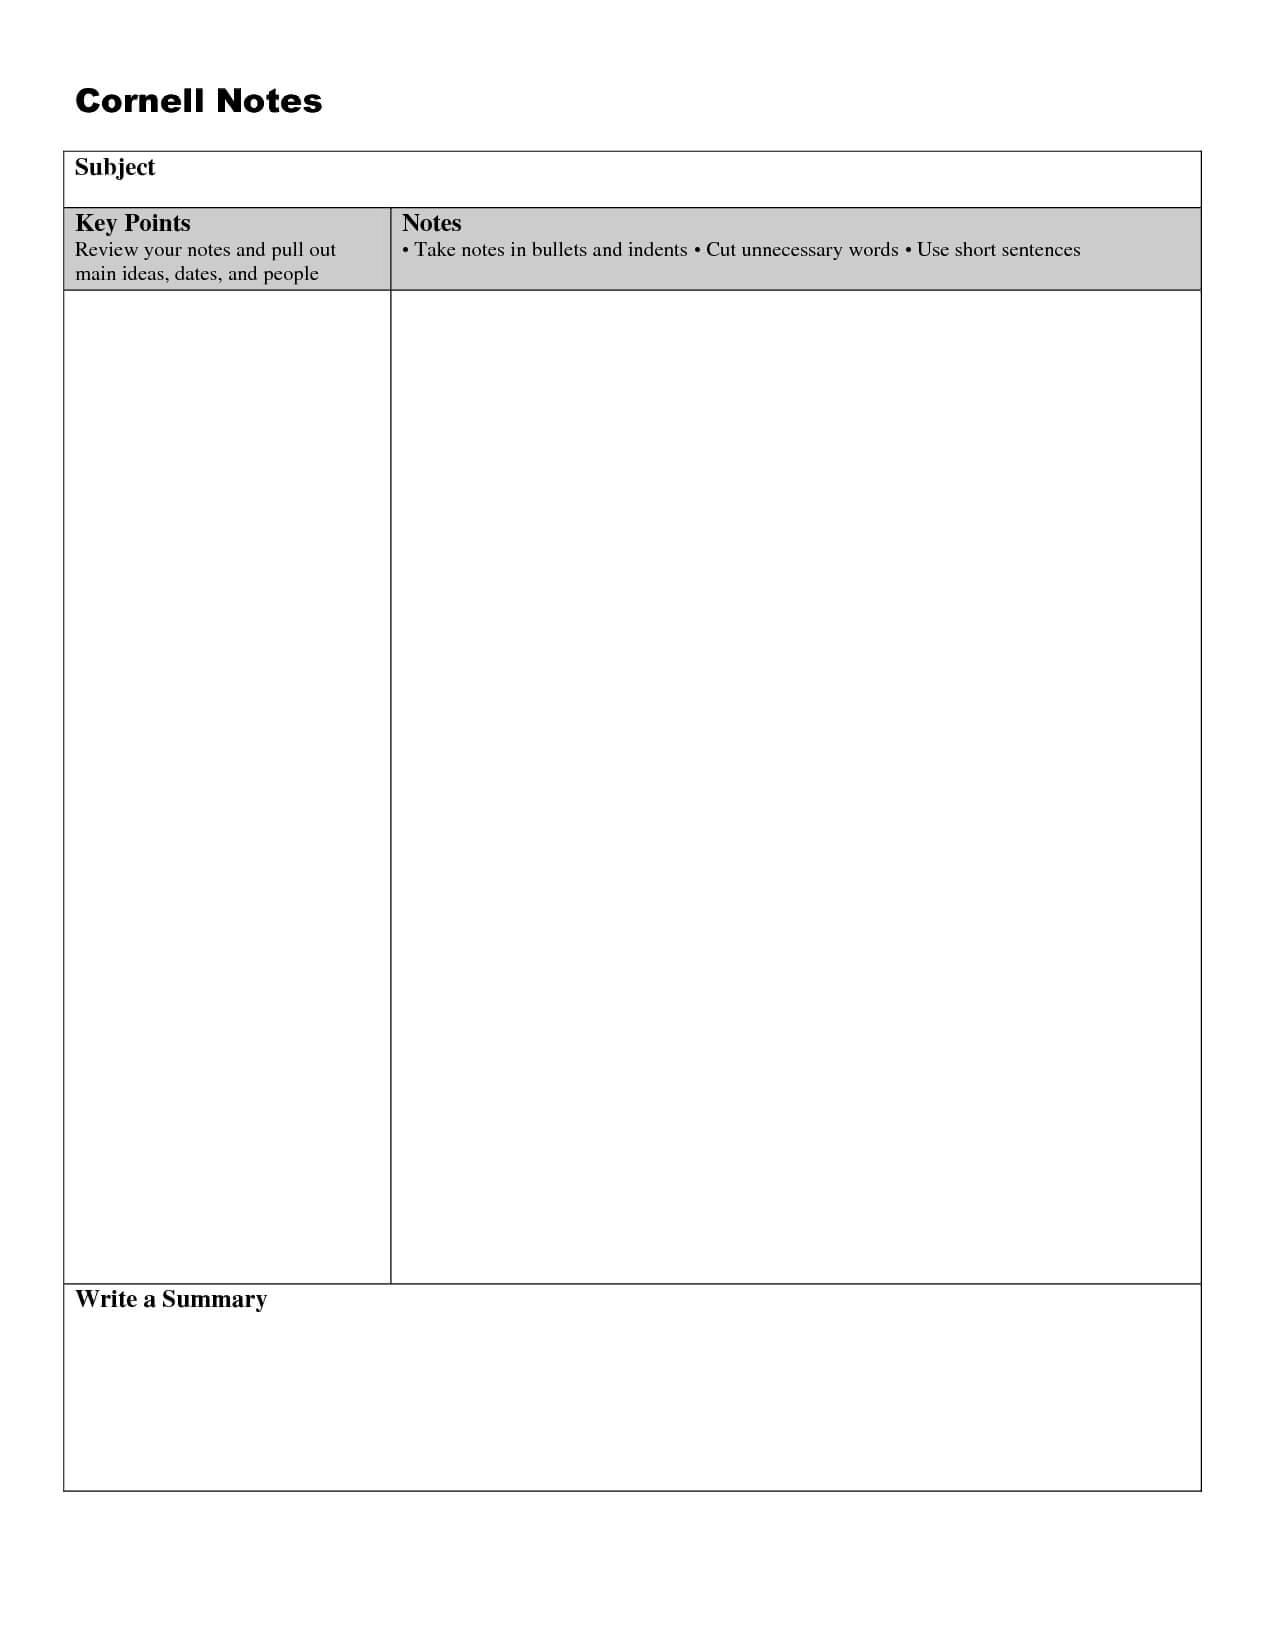 005 Note Taking Template Word Ideas Unforgettable Cornell Inside Note Taking Template Word